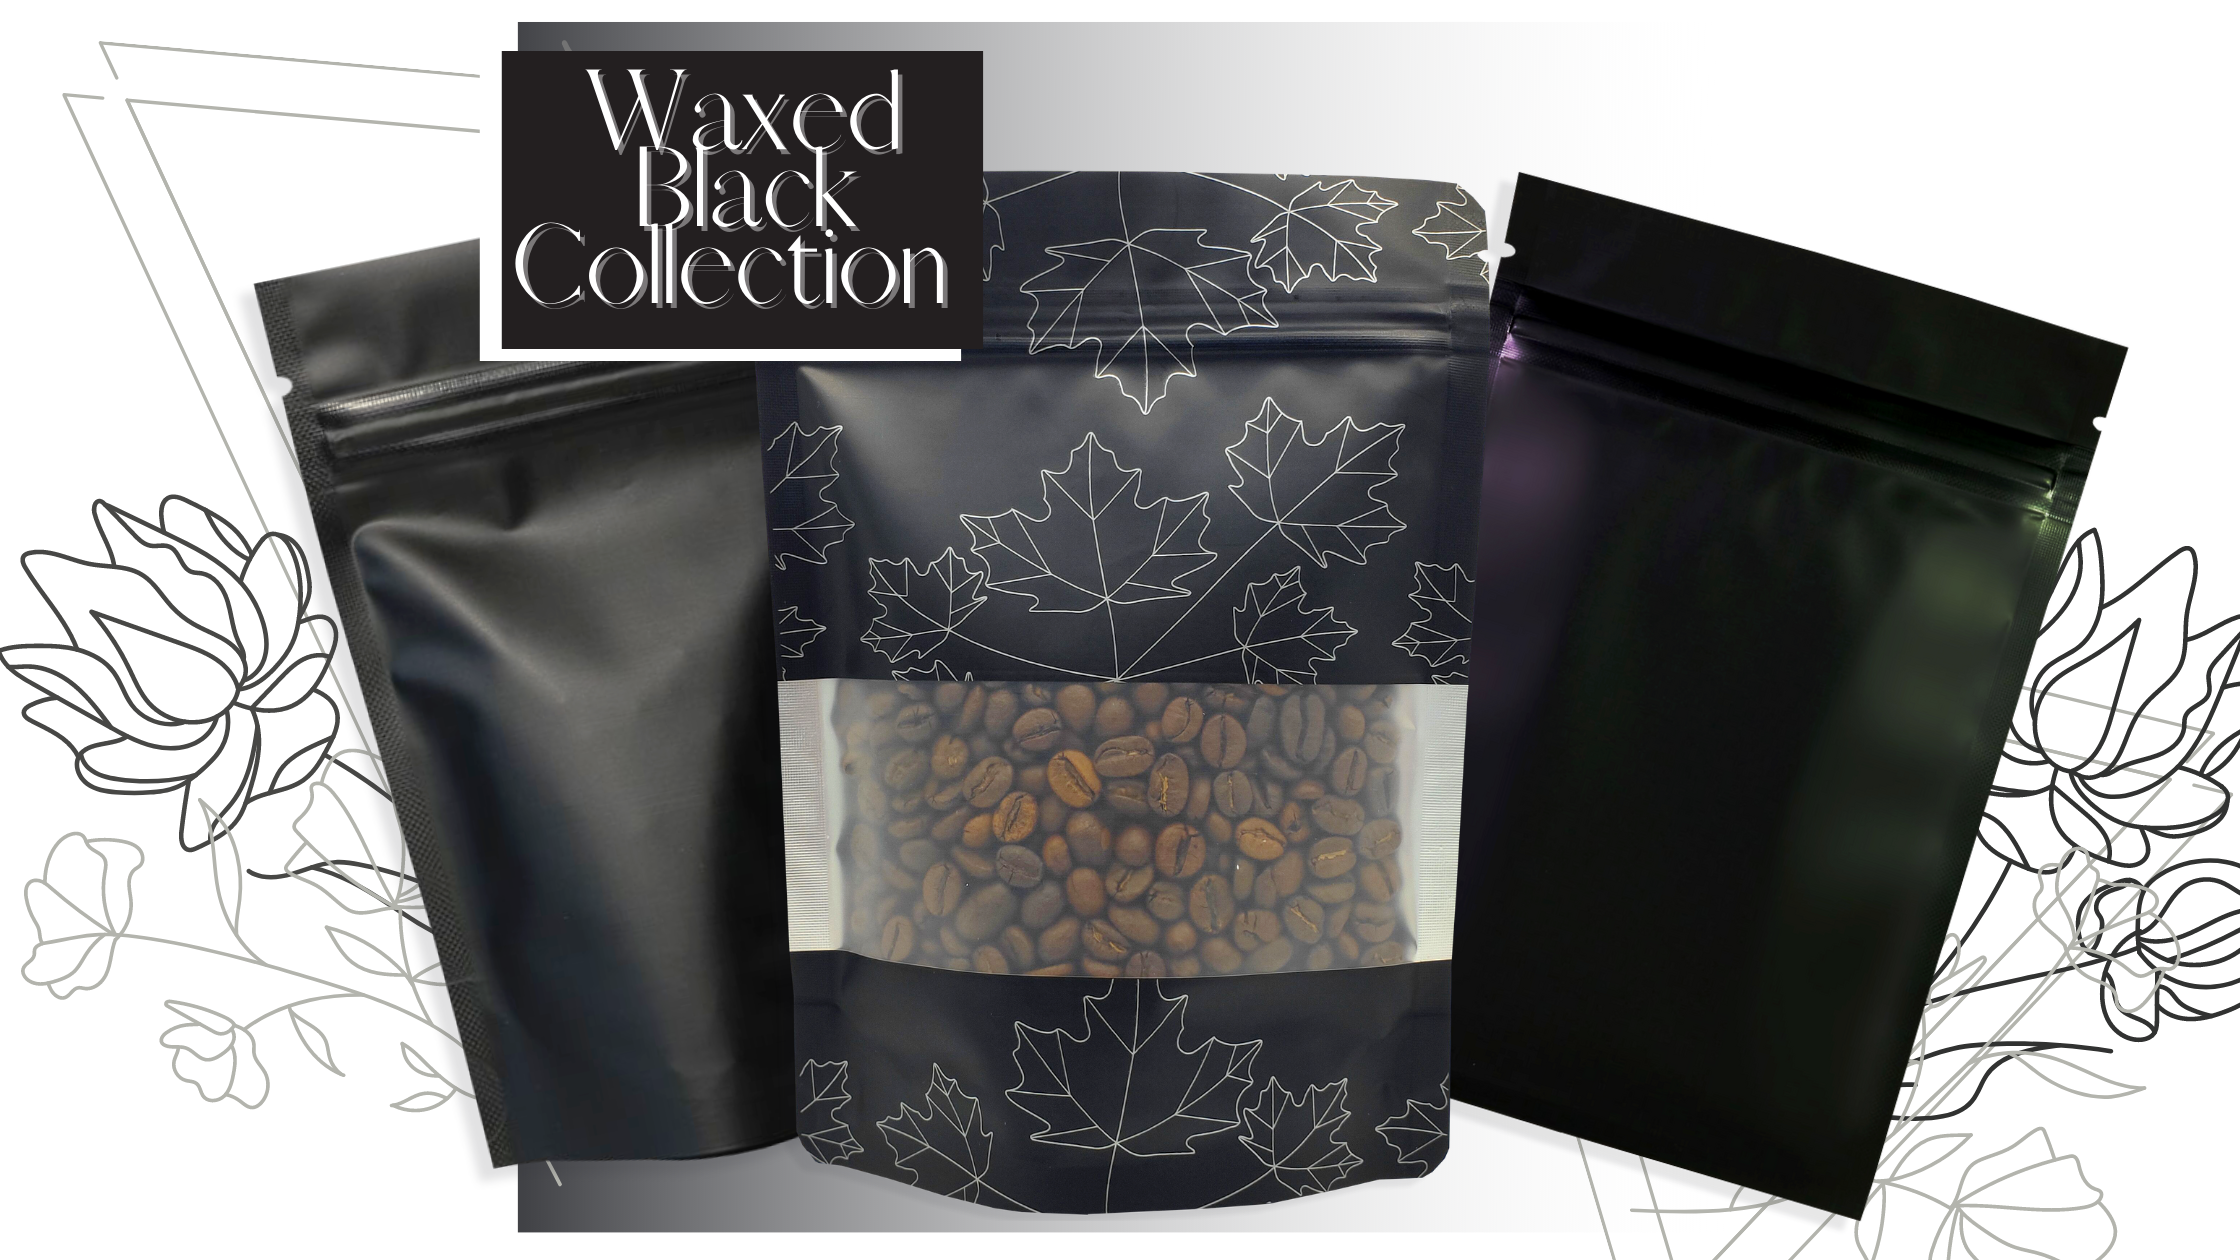 History of Black: Waxed Black Collection